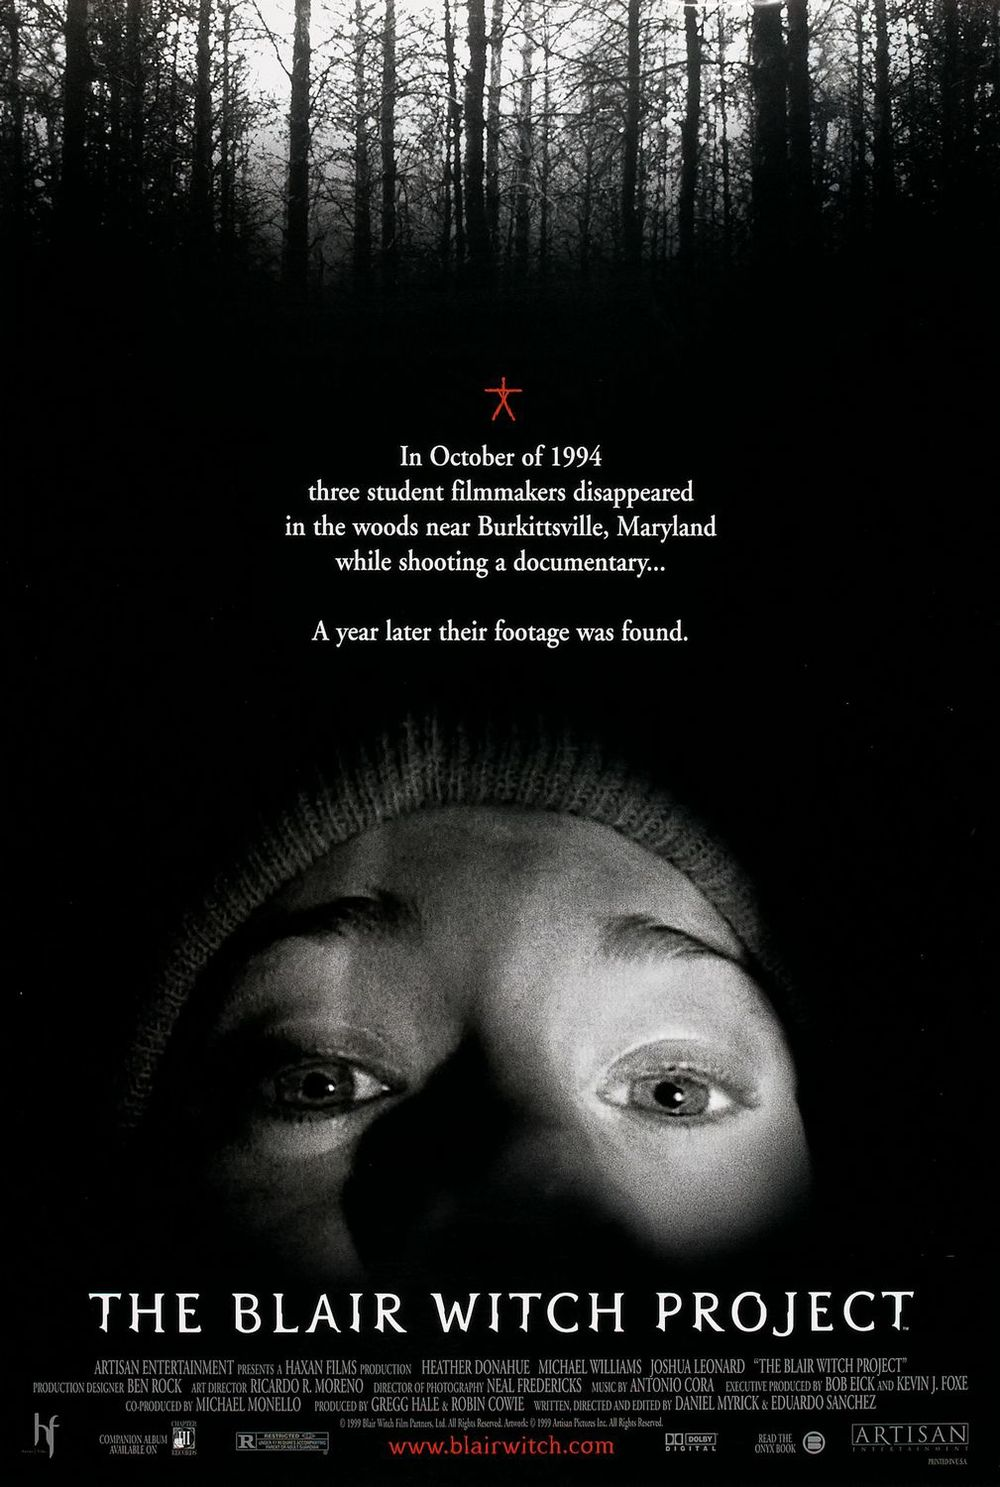 how-the-blair-witch-project-changed-movies-short-doc